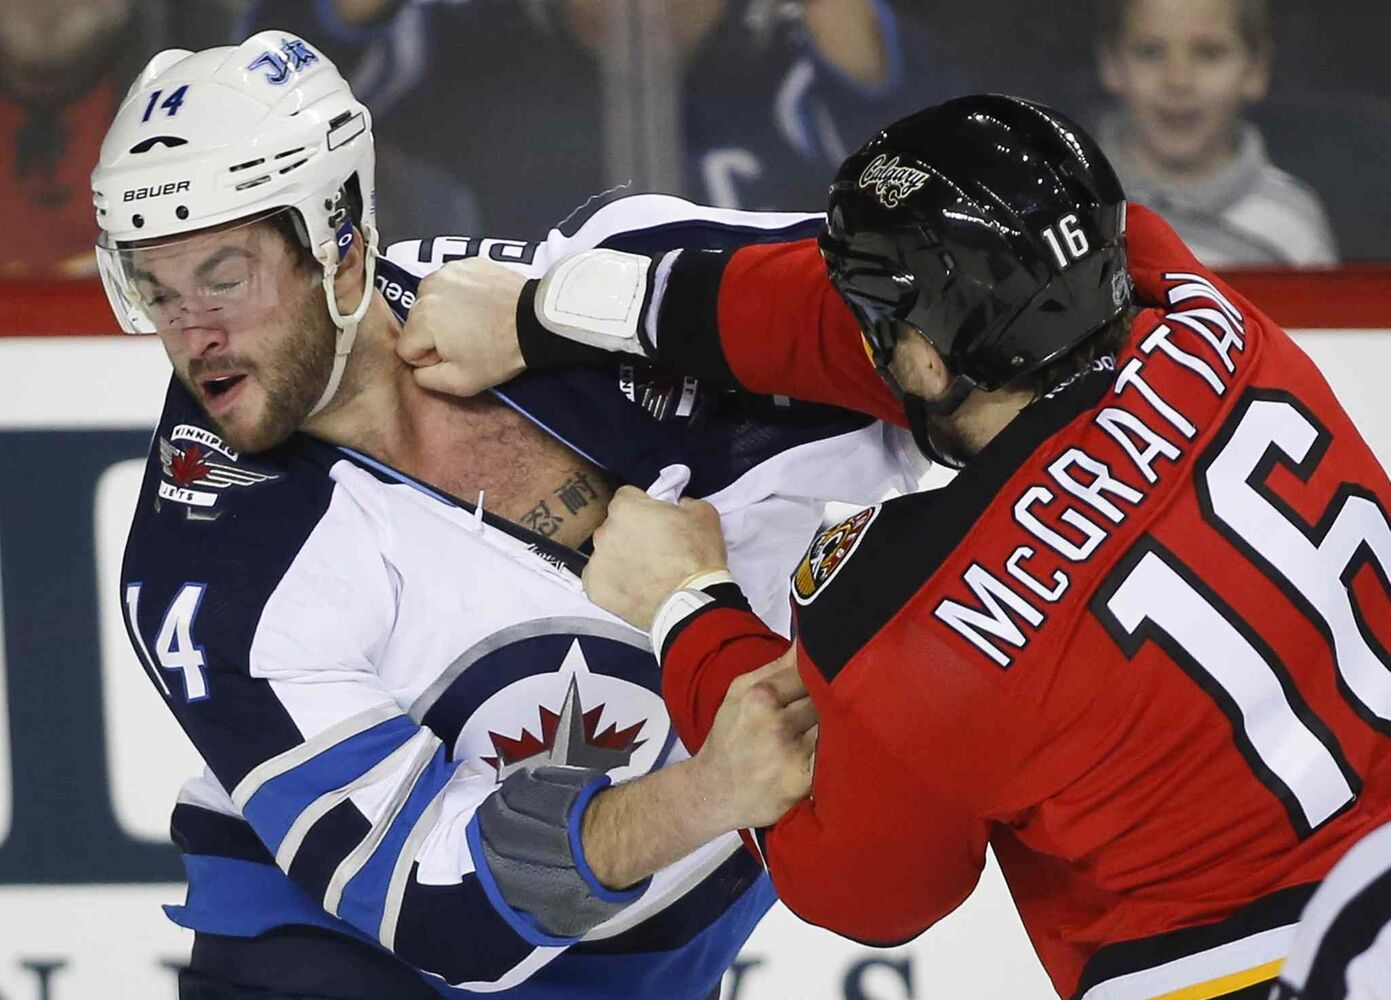 Winnipeg Jets' Anthony Peluso, left, fights Calgary Flames' Brian Mcgrattan during first period NHL hockey action in Calgary, Thursday. (Jeff McIntosh / The Canadian Press)